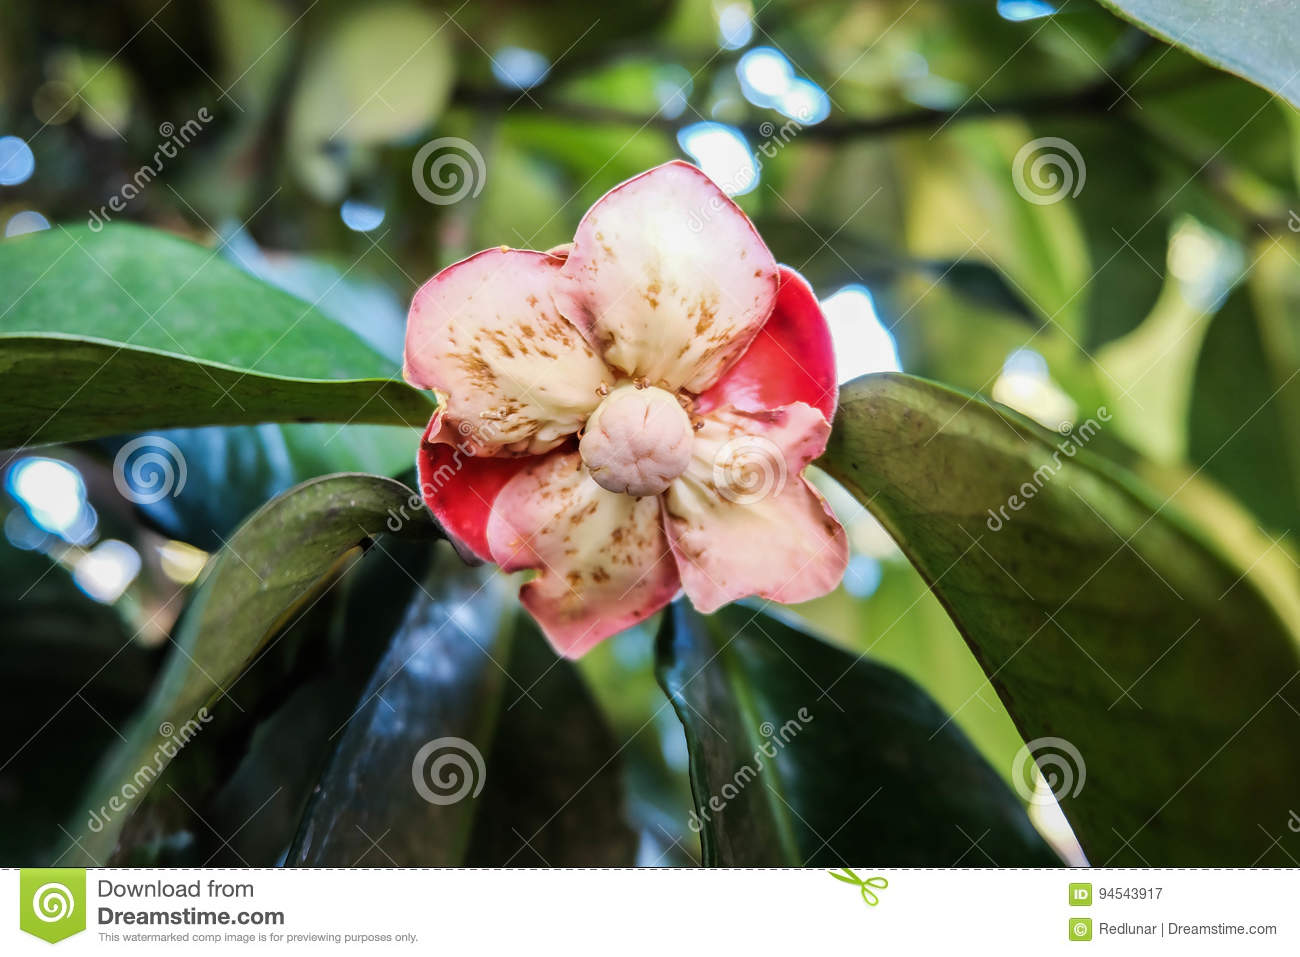 Bloom mangosteen flower stock image  Image of natural - 94543917